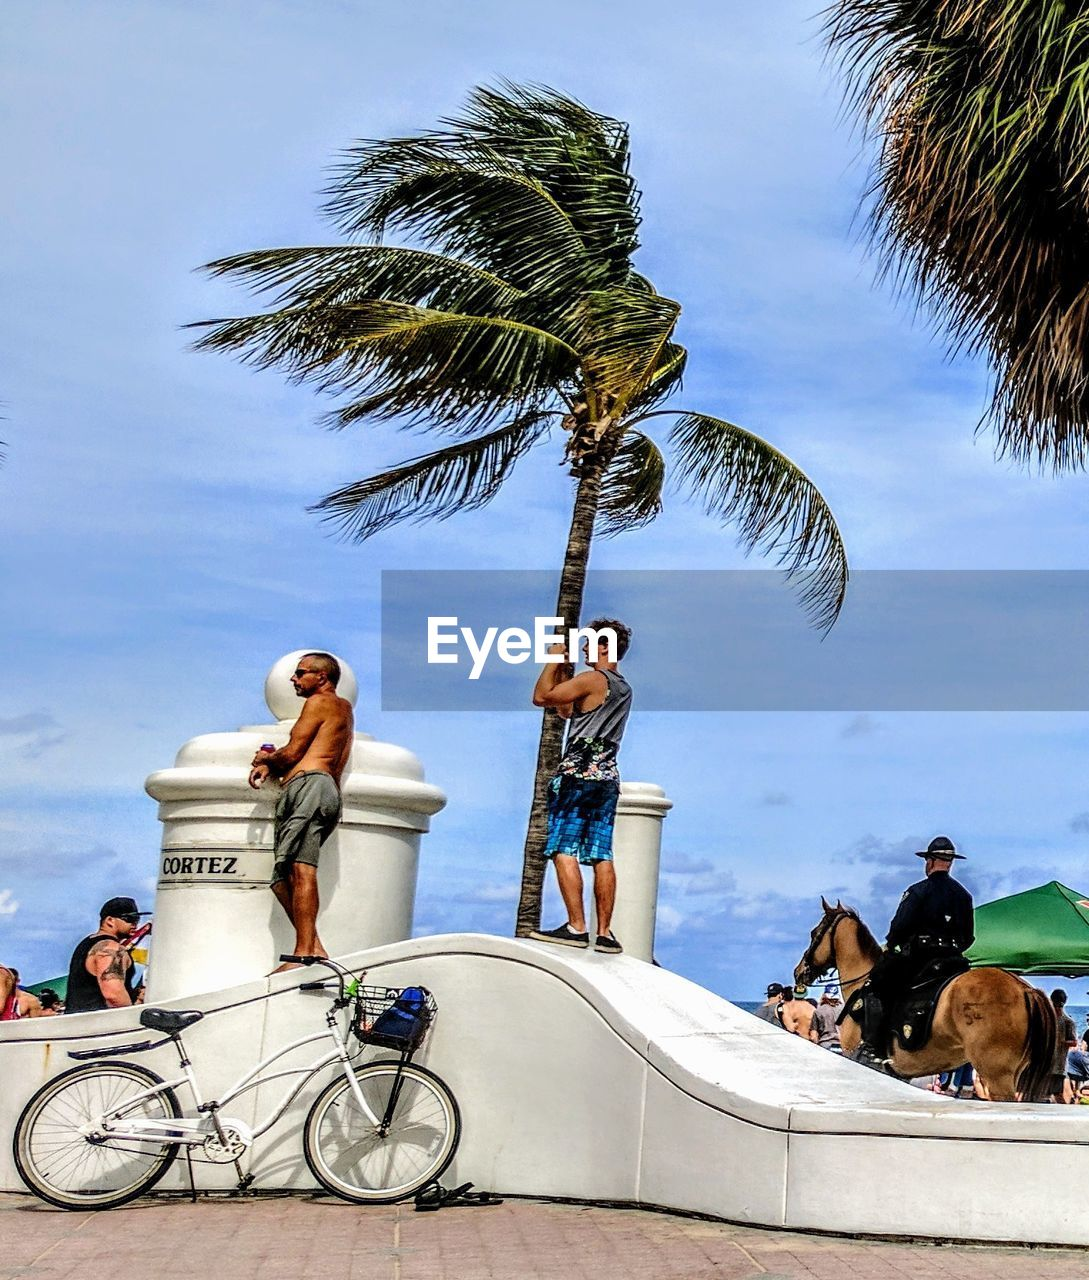 palm tree, tree, real people, transportation, sky, togetherness, day, three people, outdoors, mid adult men, men, leisure activity, riding, lifestyles, mode of transport, vacations, cloud - sky, full length, women, sitting, young adult, domestic animals, young women, friendship, nature, mammal, adult, people